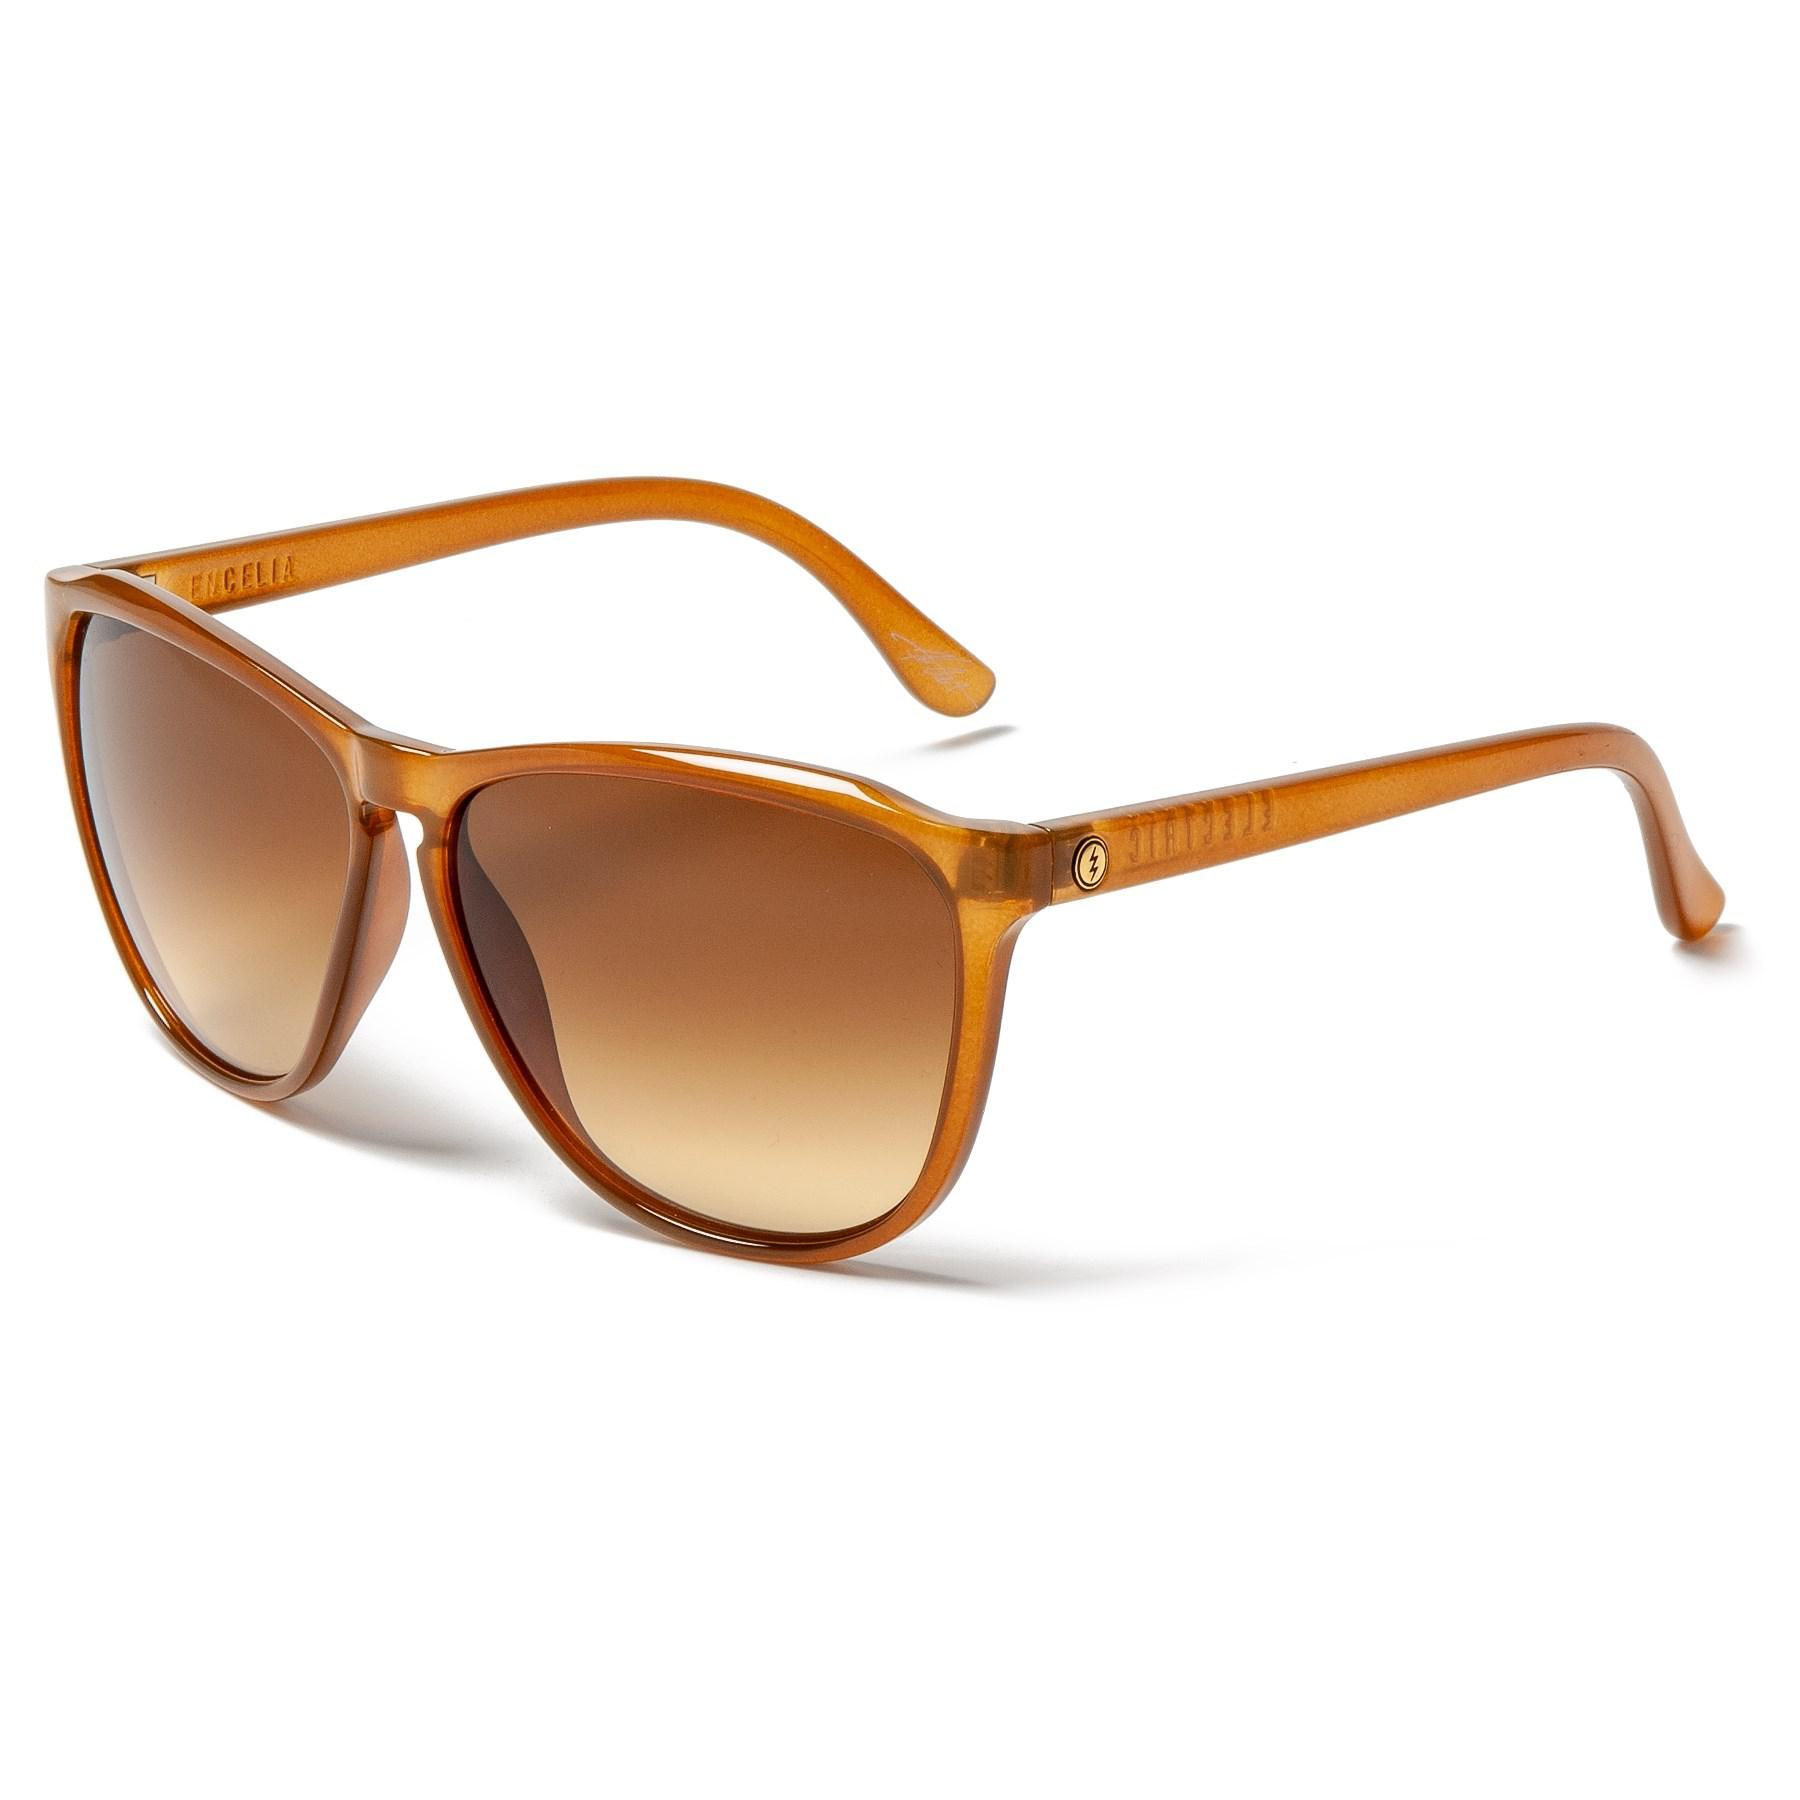 69435332139 Lyst - Electric Encelia Ohm Lens Sunglasses (for Women) in Brown